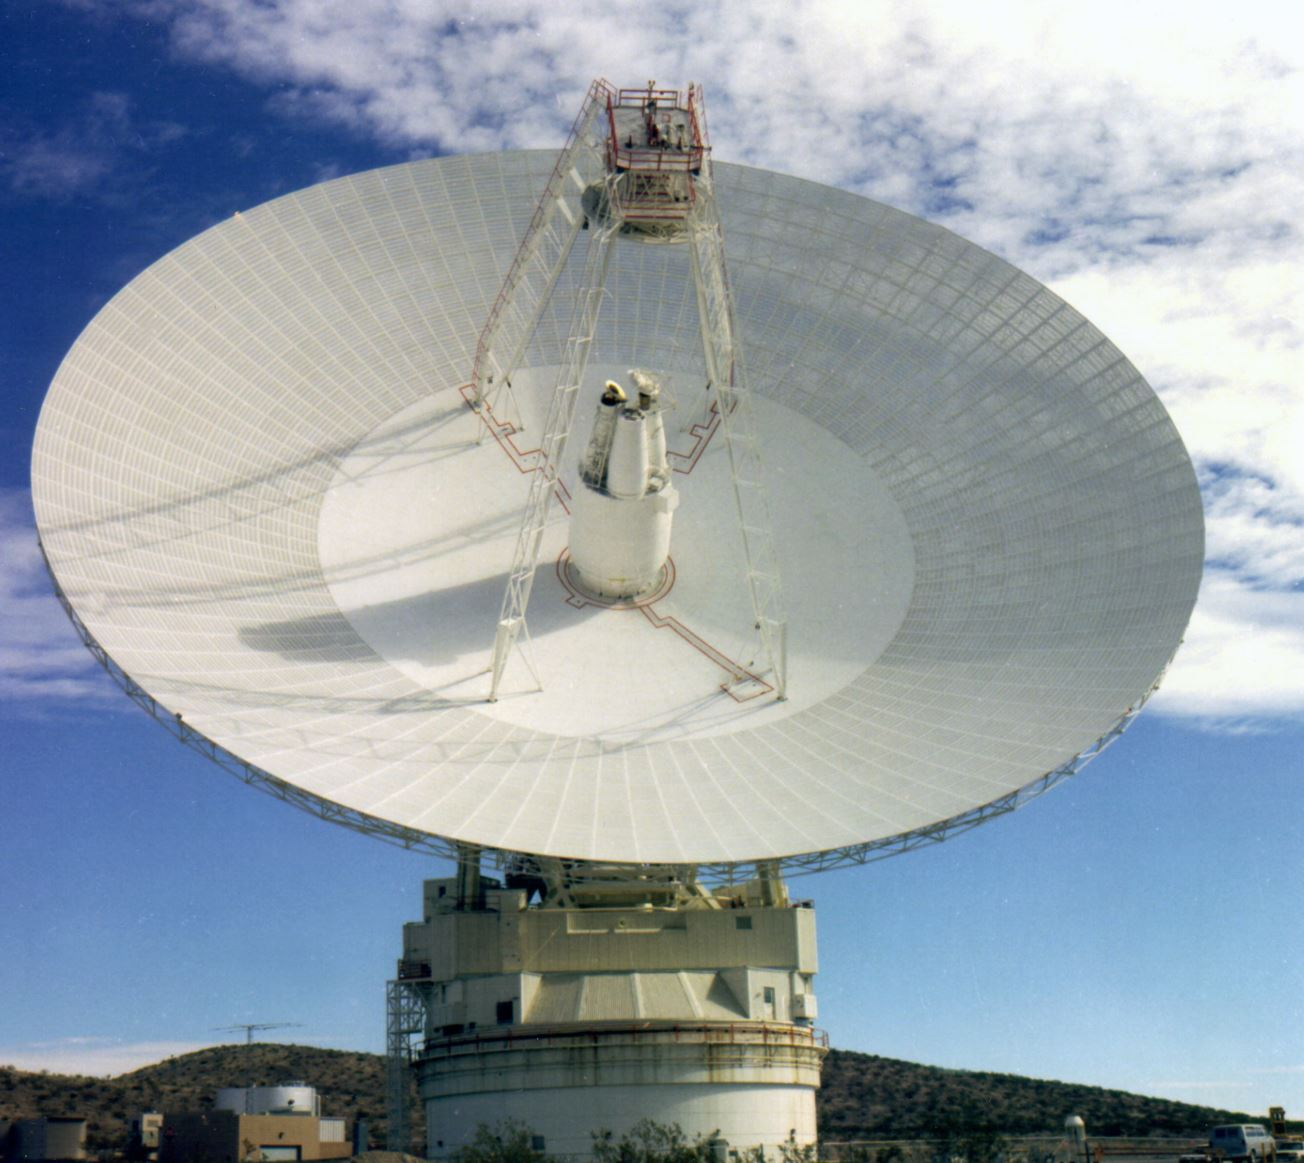 One of the massive radio antennas supporting NASA's Deep Space Network (DSN). - Image Credit: NASA